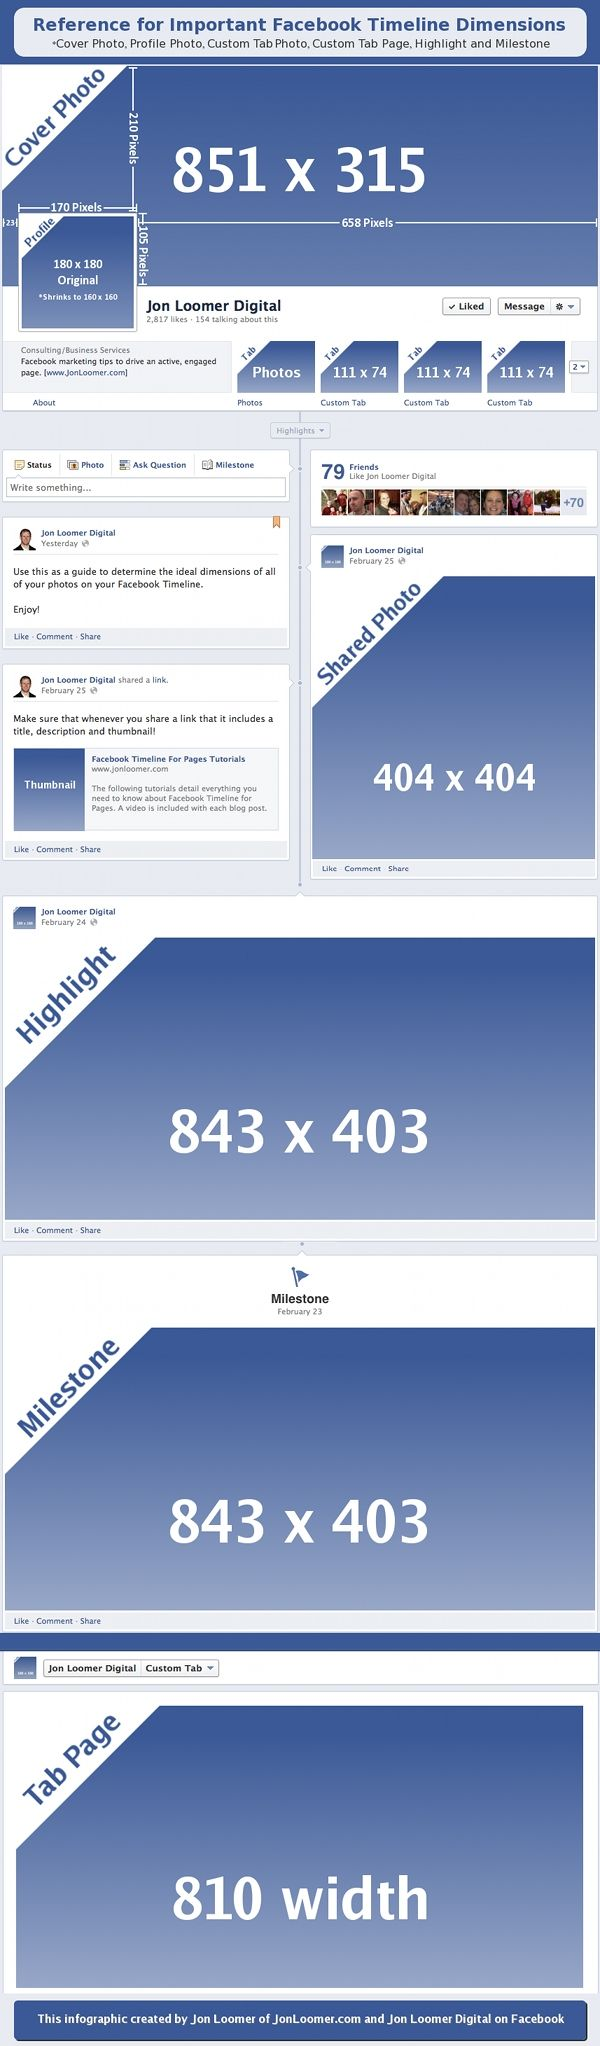 Great updated infographic re: Facebook page layout - photo dimensions etc.: Marketing Strategies, Digital Marketing, Timeline Covers, Social Media, Facebook Timeline, Cheat Sheet, Covers Photos, Socialmedia, Life Savers